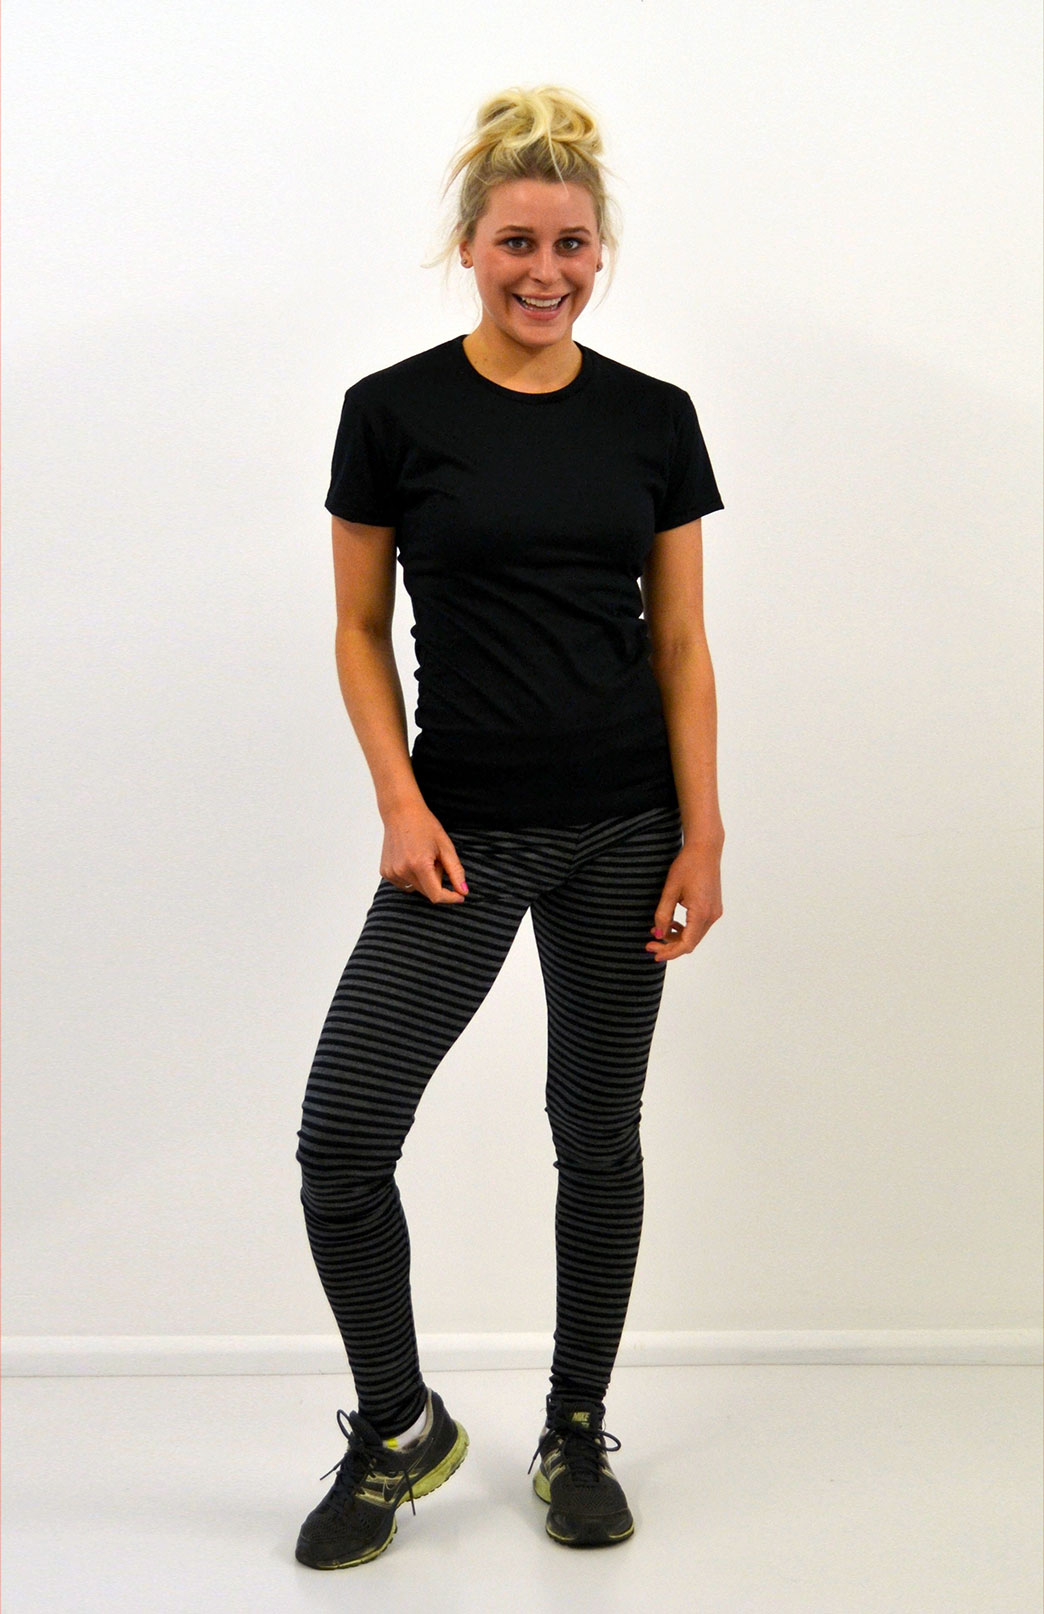 Womens Leggings - 220g - Womens Striped Pattern Superfine Merino Thermal Activewear Leggings - Smitten Merino Tasmania Australia